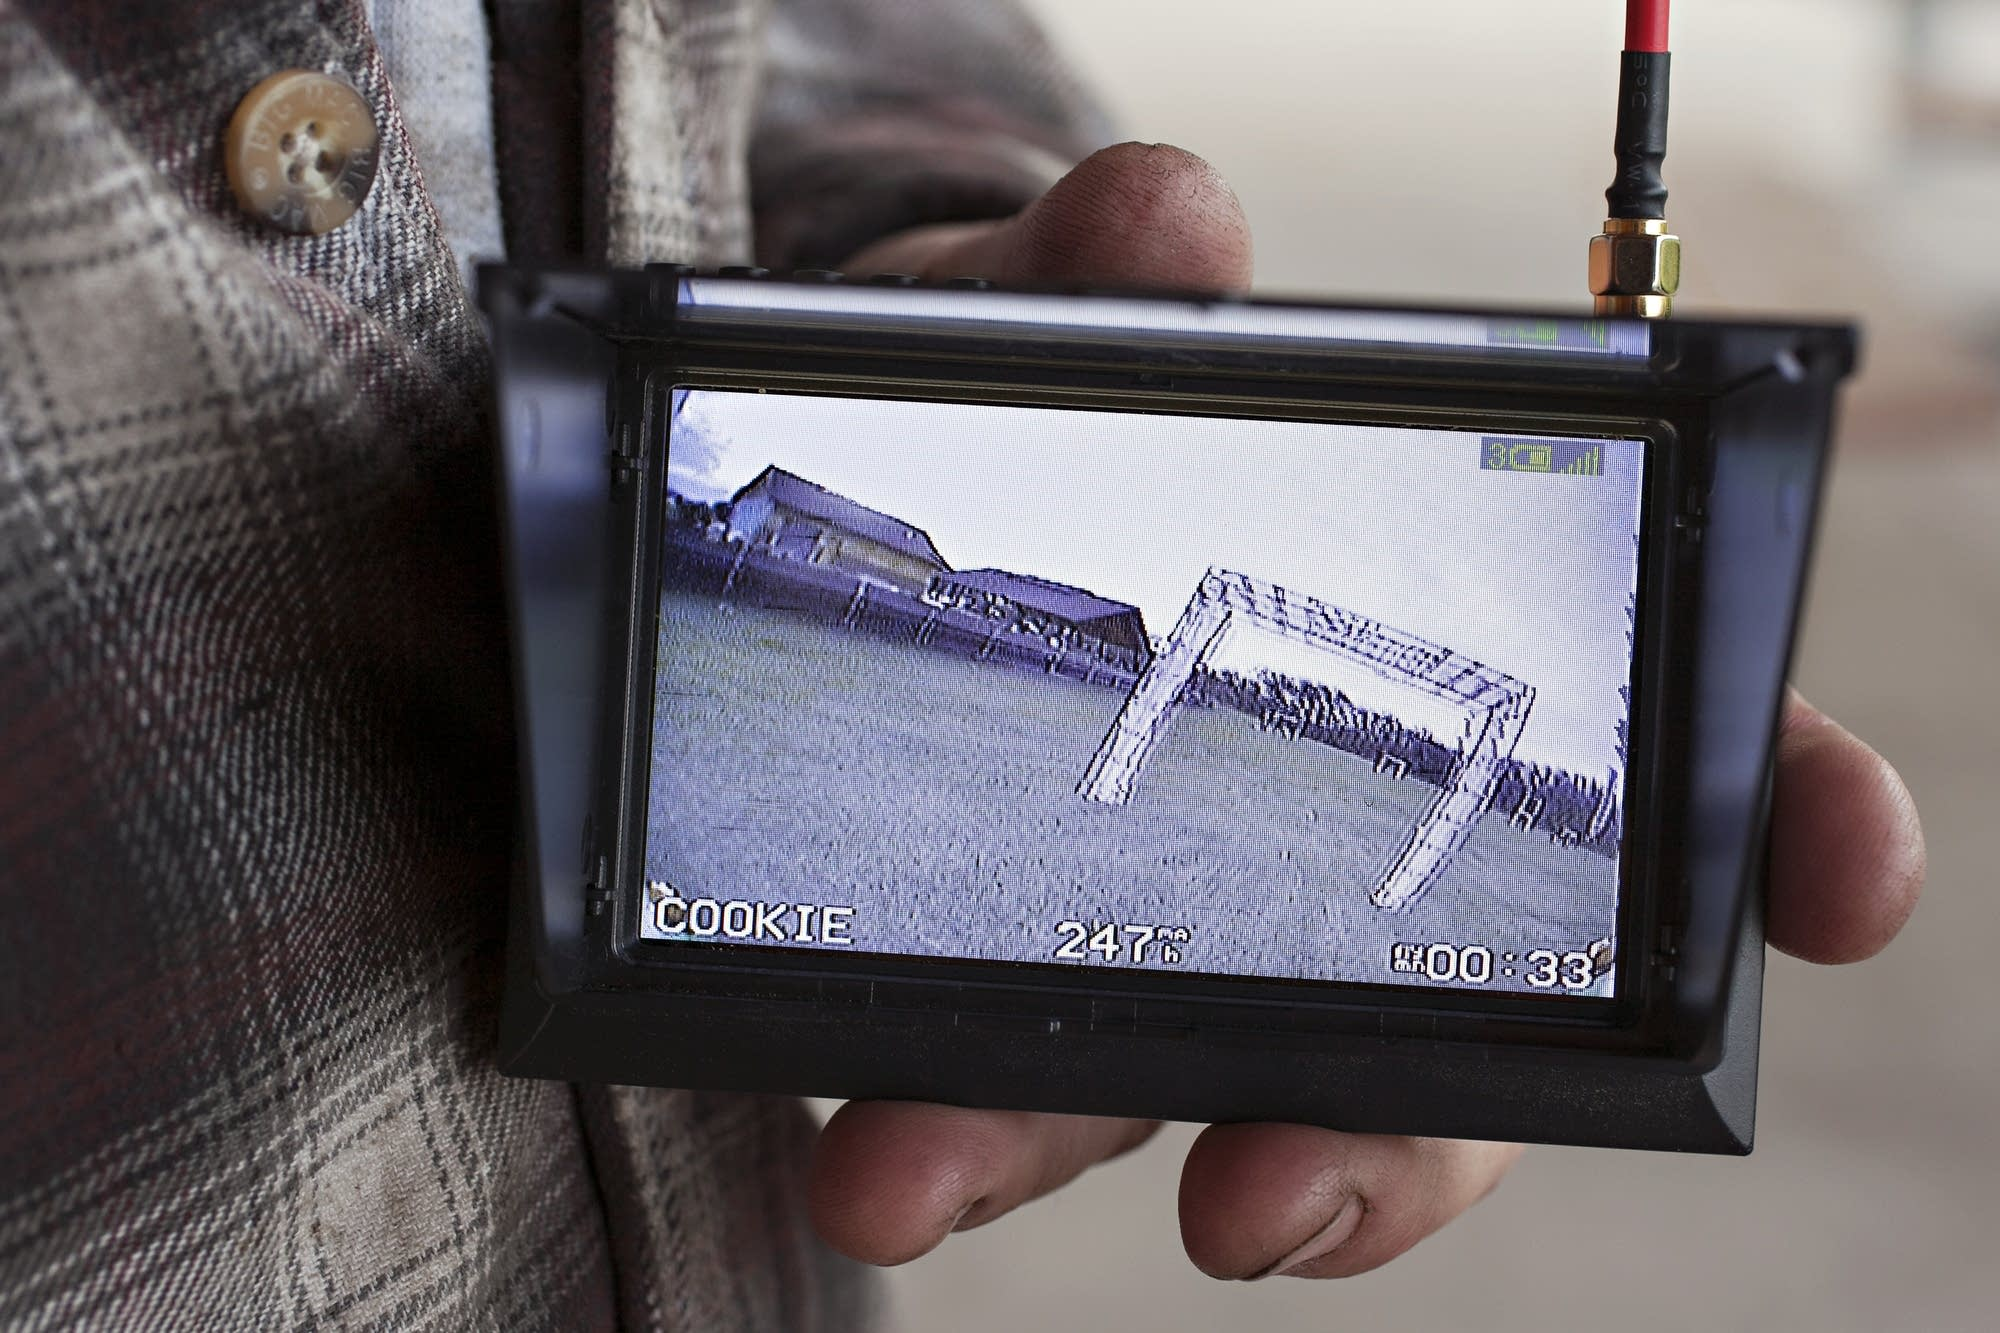 A small monitor displays the video from a camera on board a tiny aircraft.